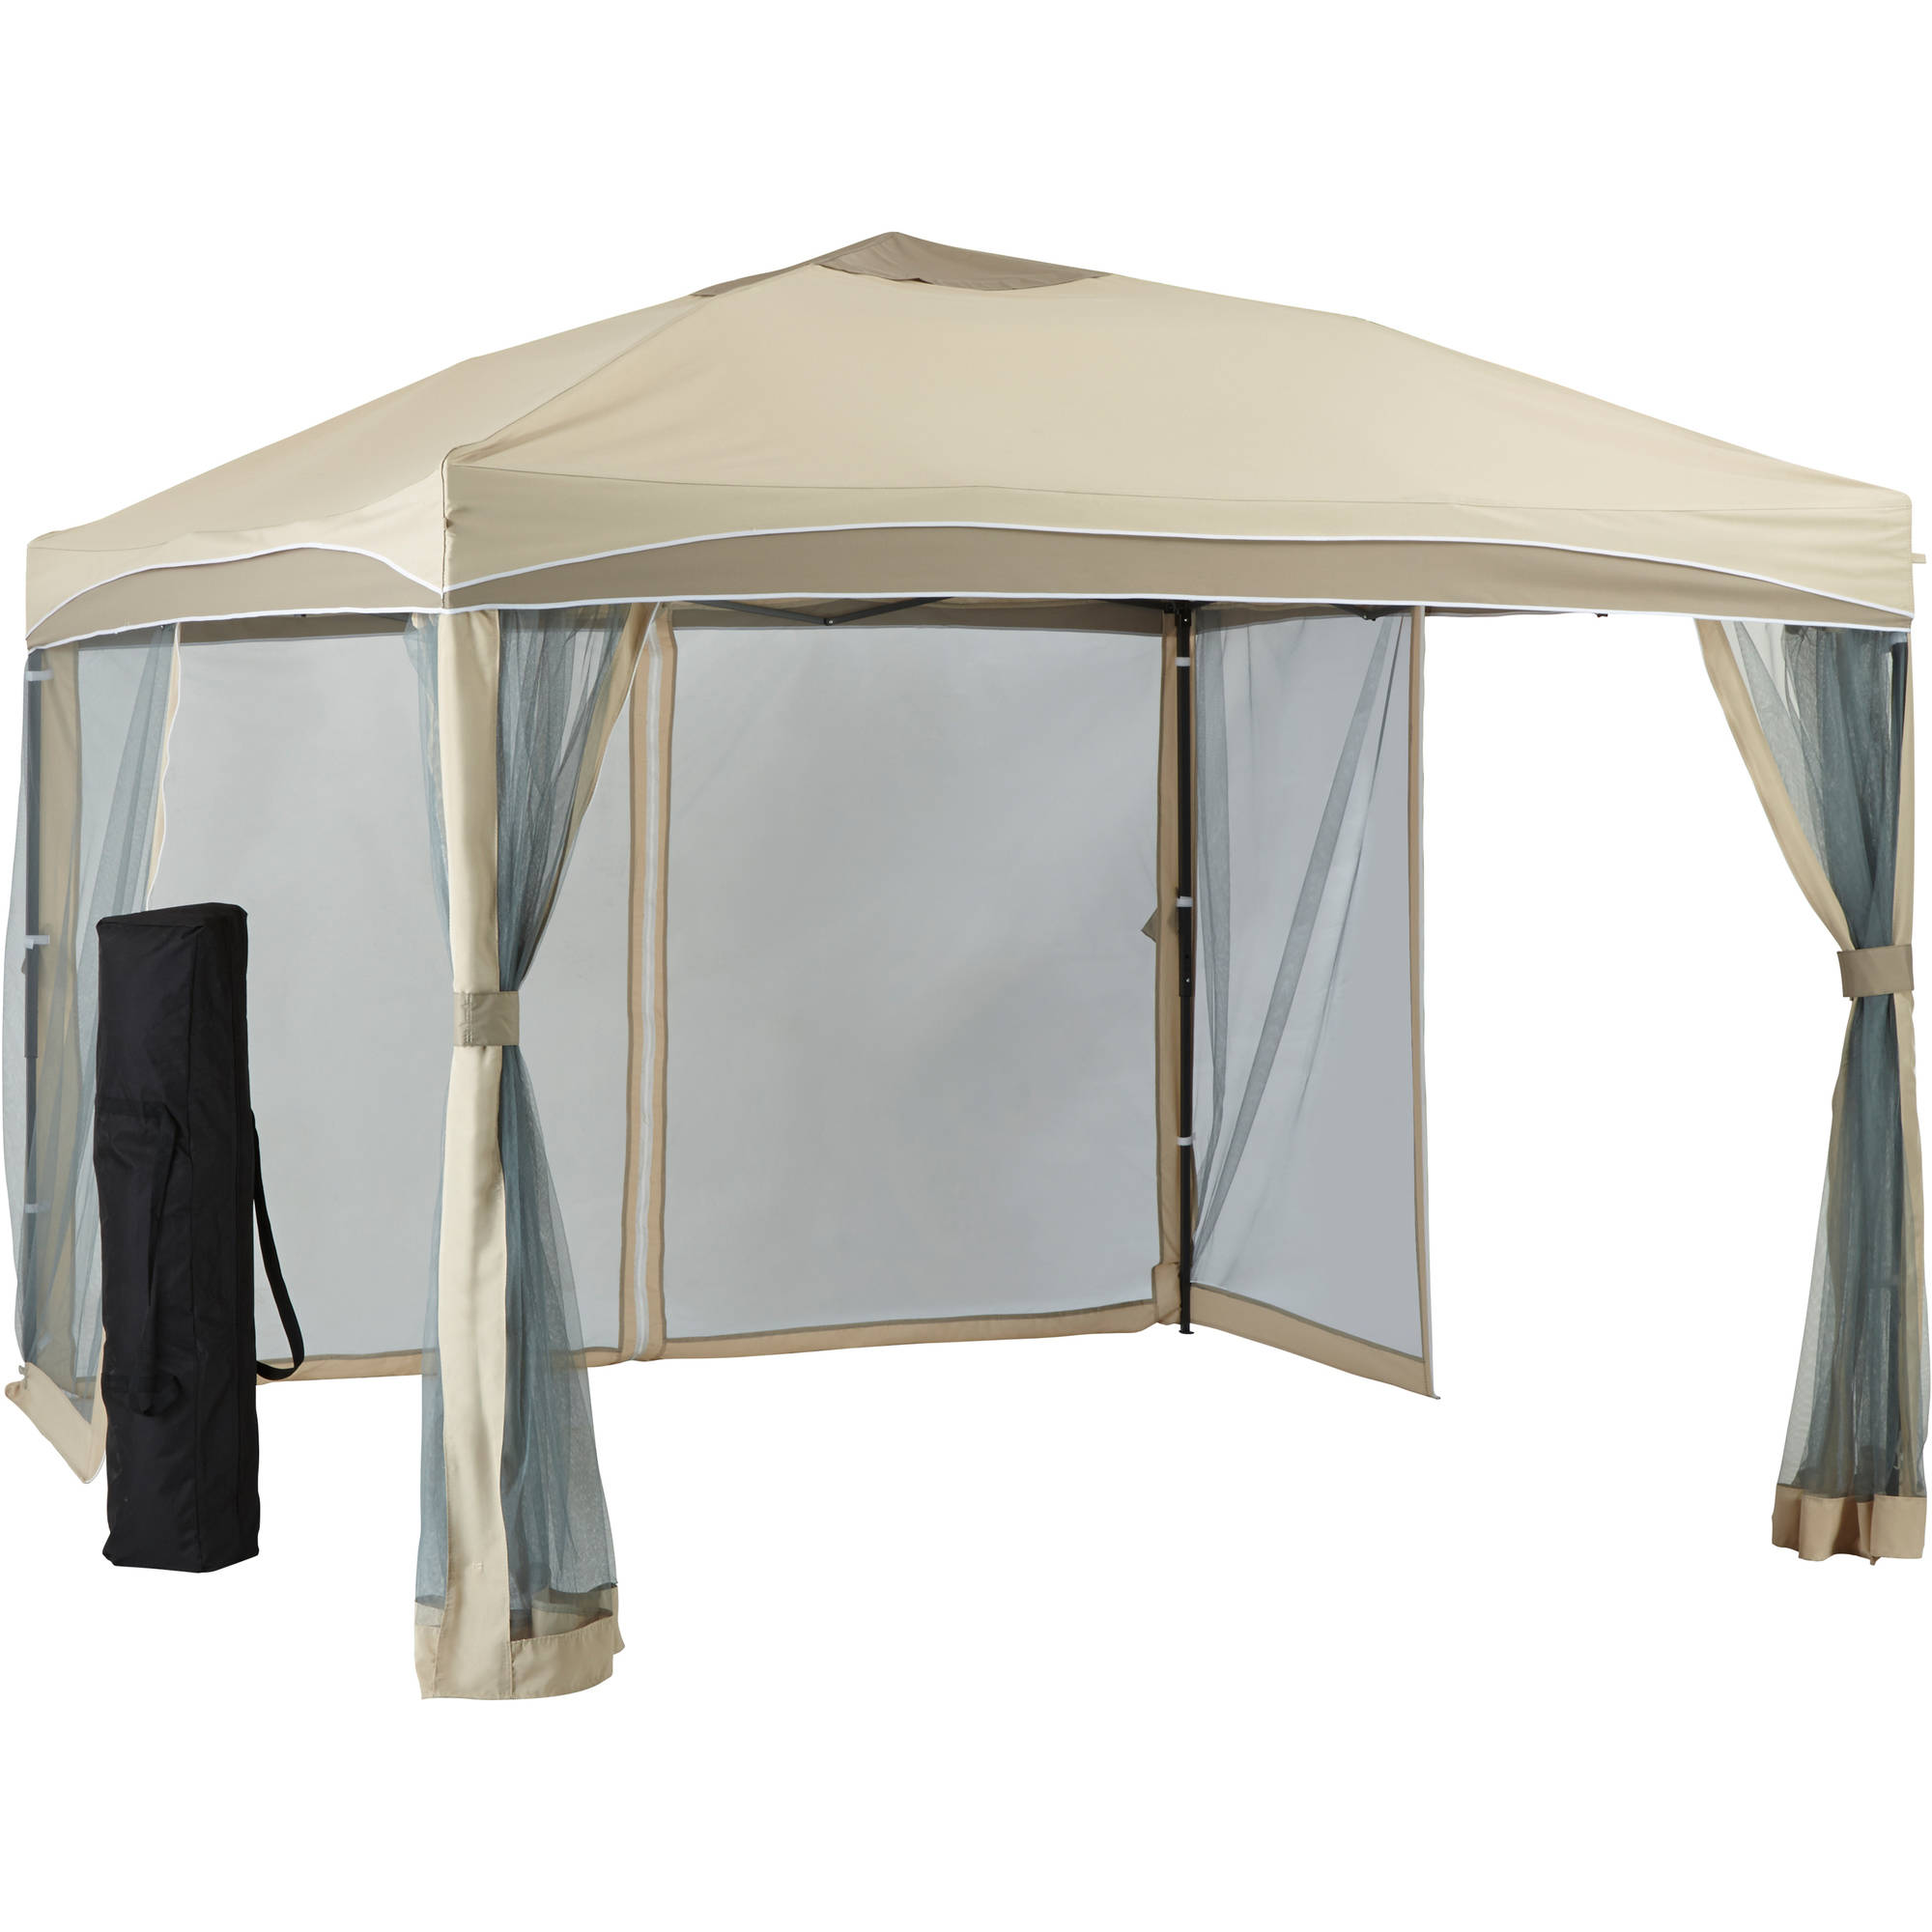 Better Homes And Gardens Gazebo Plans House Design Plans: better homes and gardens gazebo